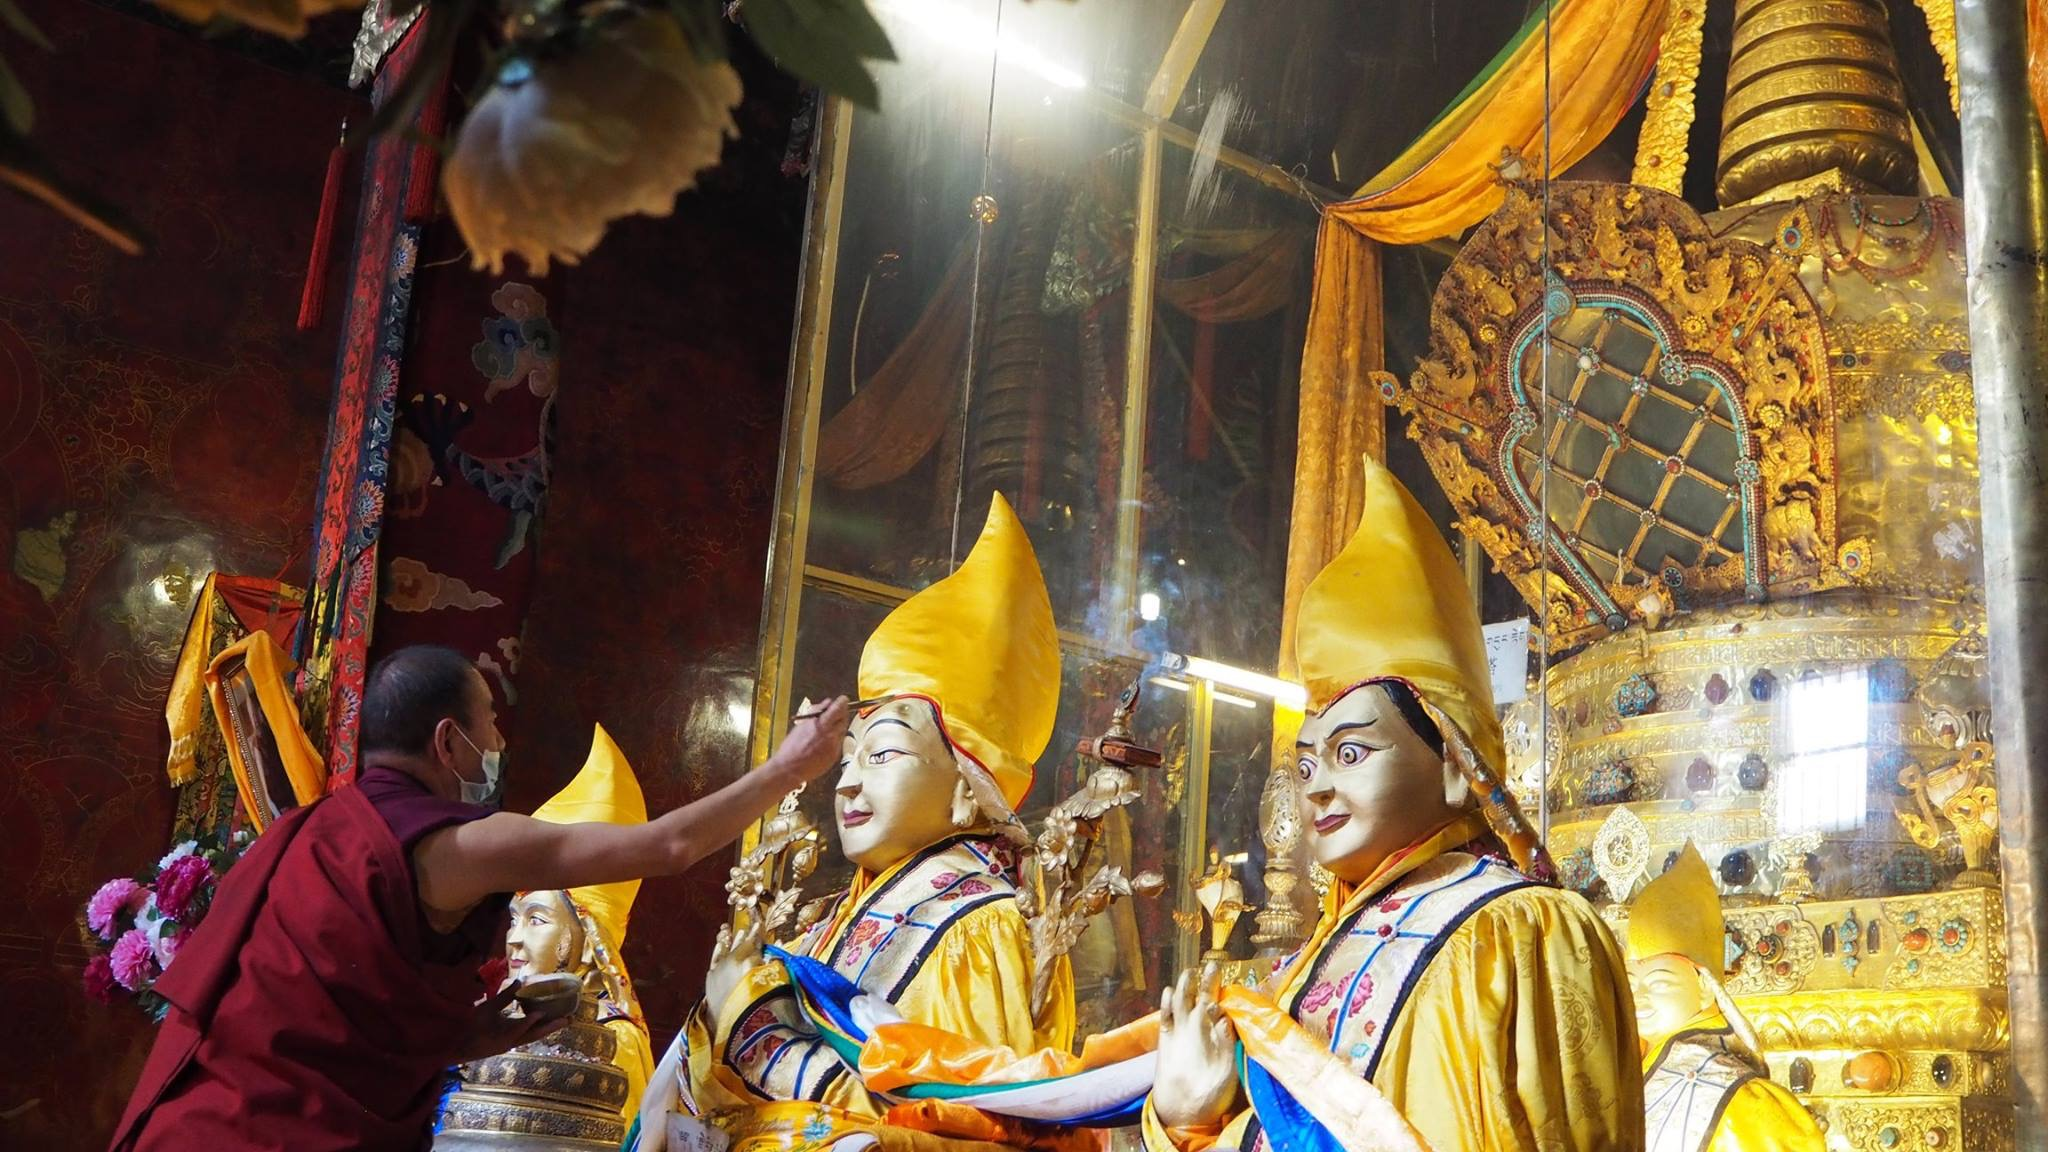 A monk applies gold to the statue of Lama Tsongkhapa in front of the stupa of his relics at Ganden Monastery, Tibet. (Photo Ven Tenzin Tsultrim)